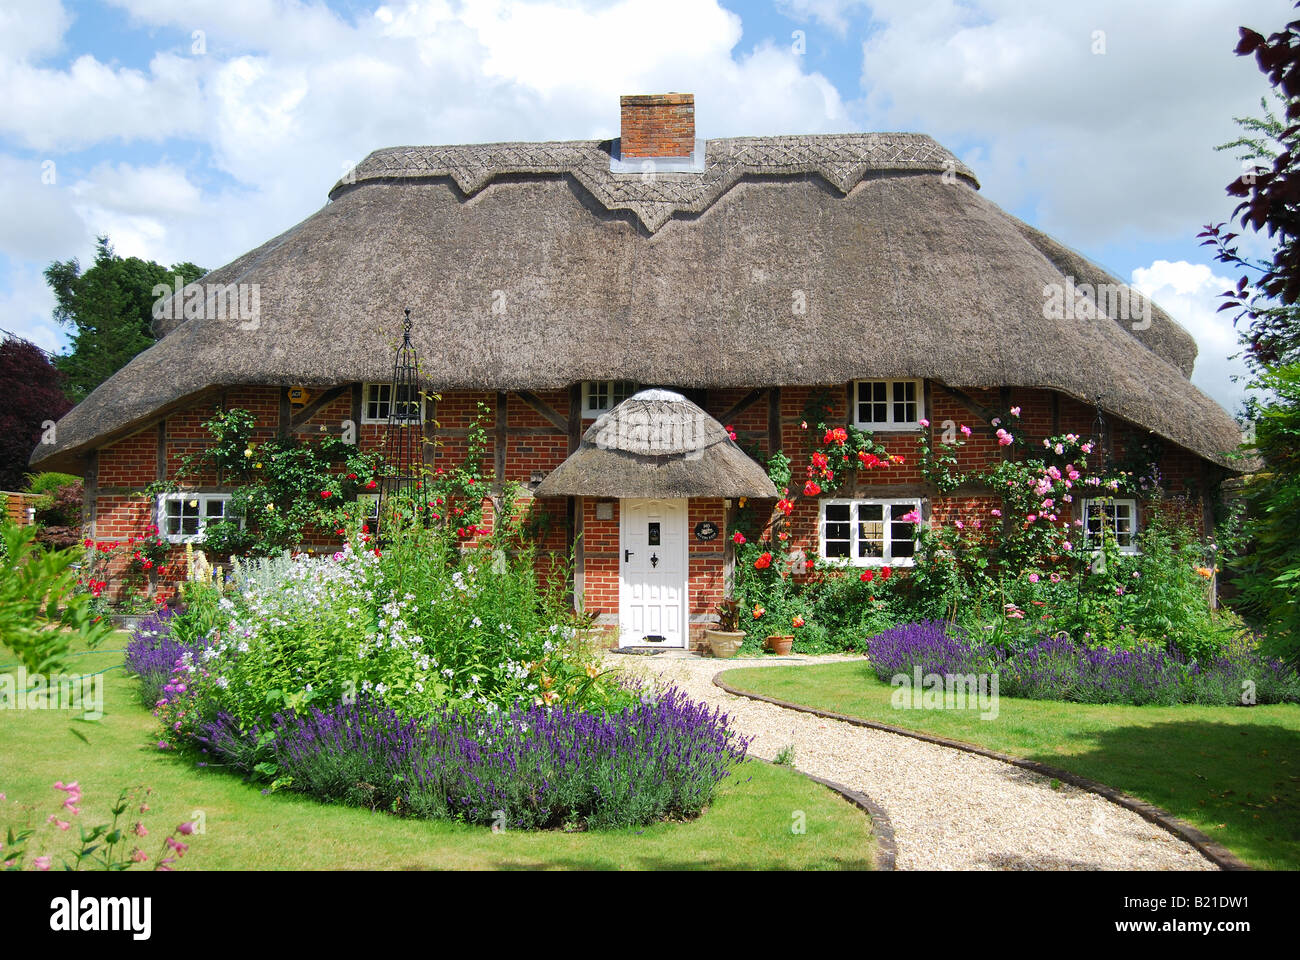 Thatched country cottage and garden, Itchen Stoke, Hampshire, England, United Kingdom - Stock Image